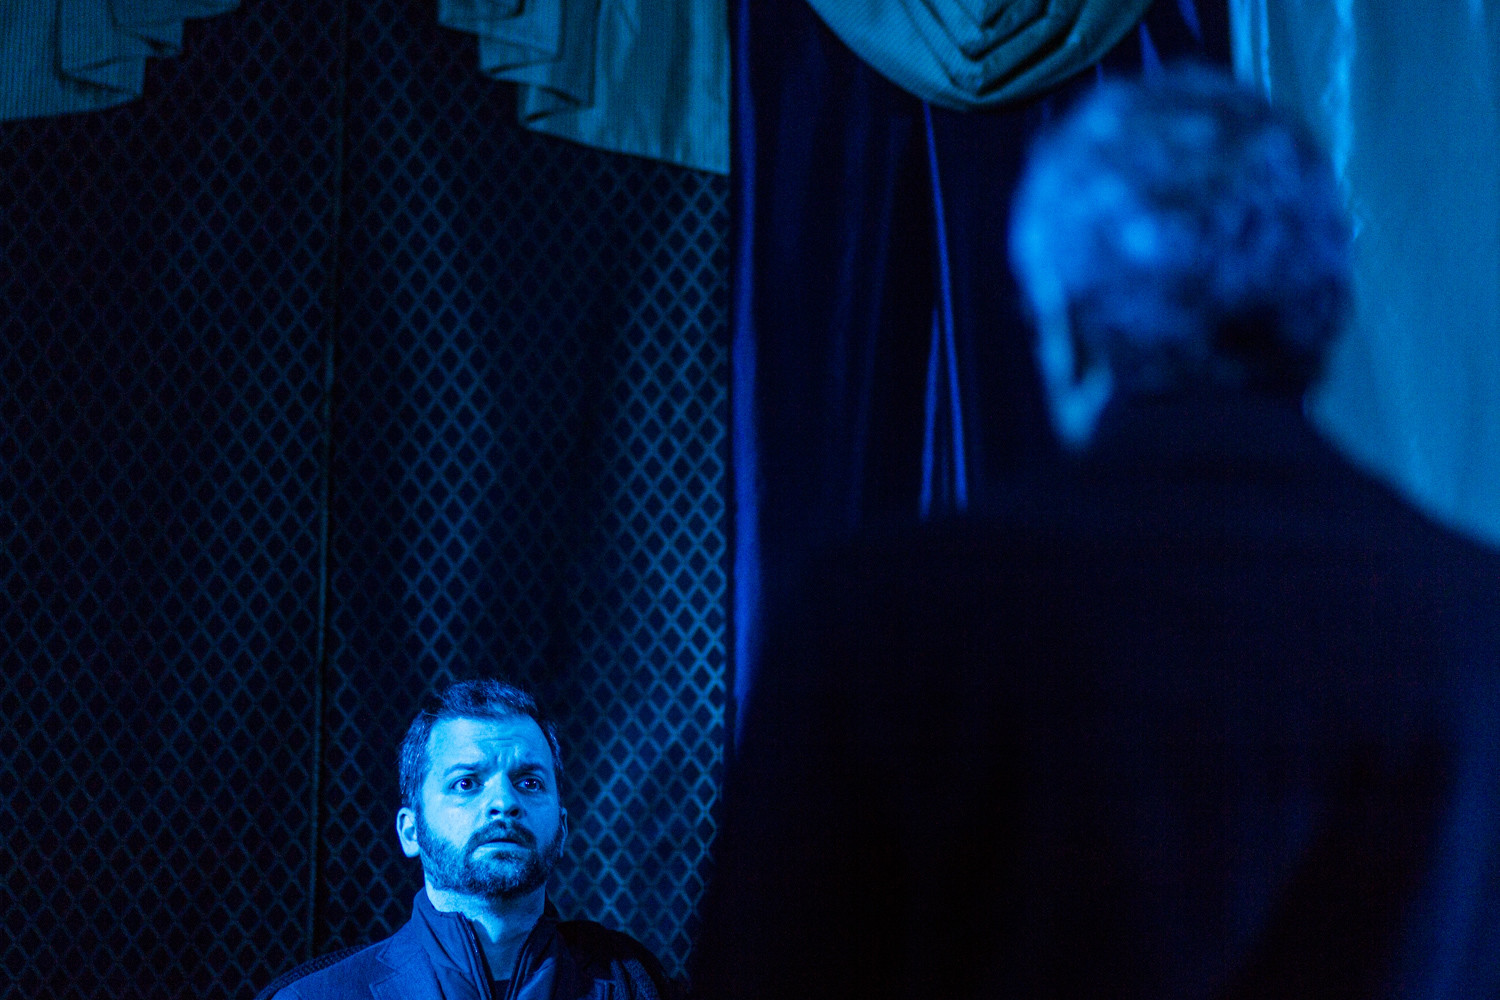 Red Monkey Theater Group artistic director Tal Aviezer rehearses the scene in Shakespeare's 'Hamlet' when the titular prince confronts the ghost of his slain father, portrayed by Gregg Shults, for the first time.